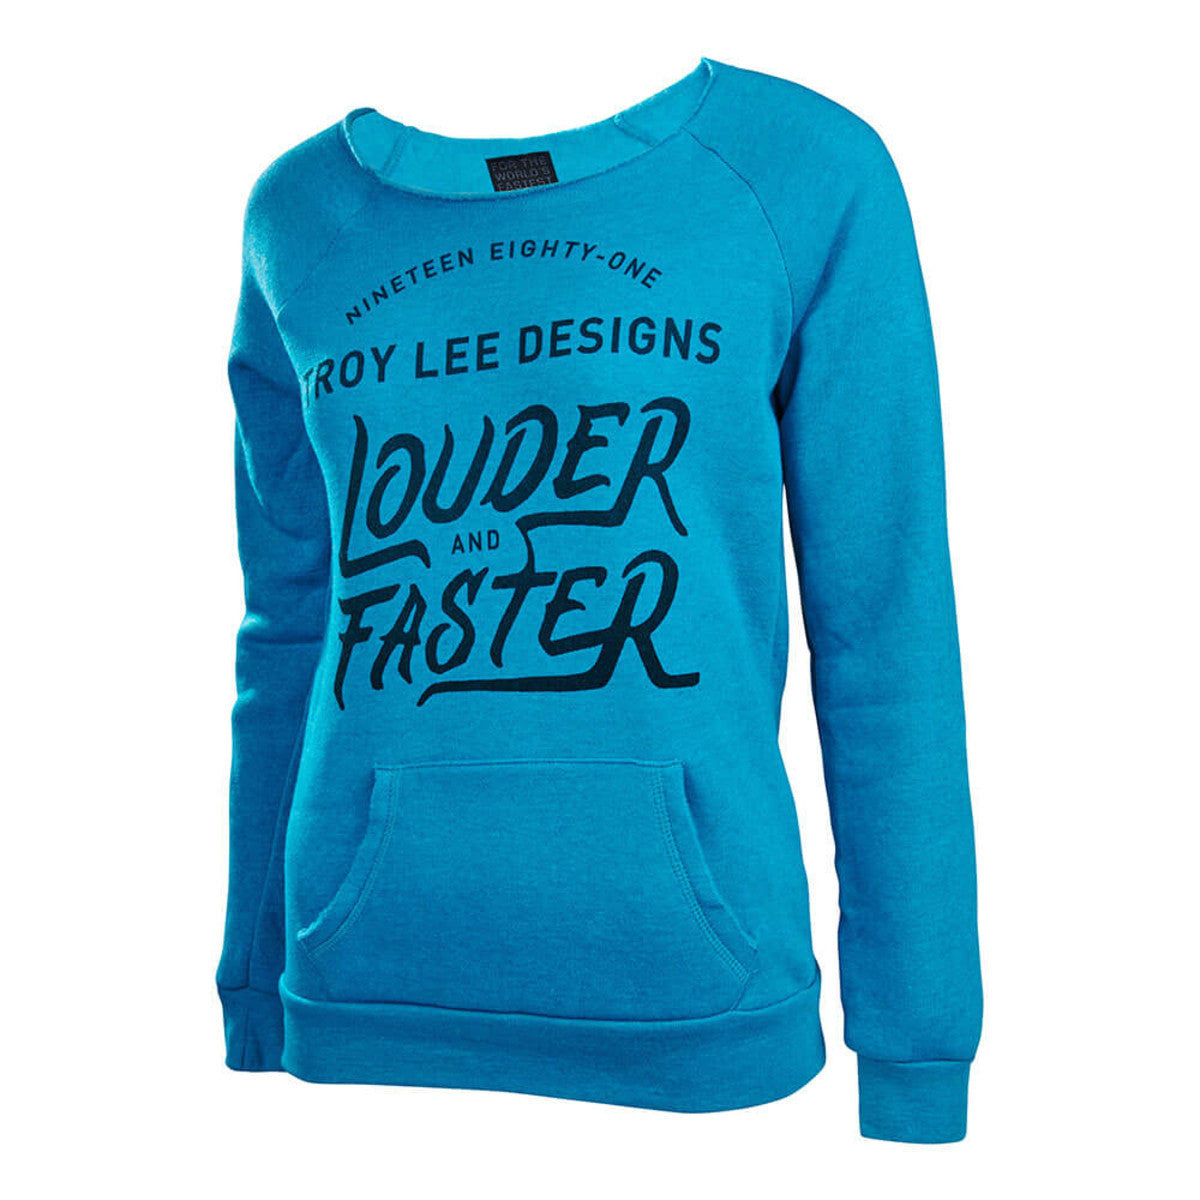 Misfit Raglan Pullover Womens Hoodie- Heather Teal by Troy Lee Designs